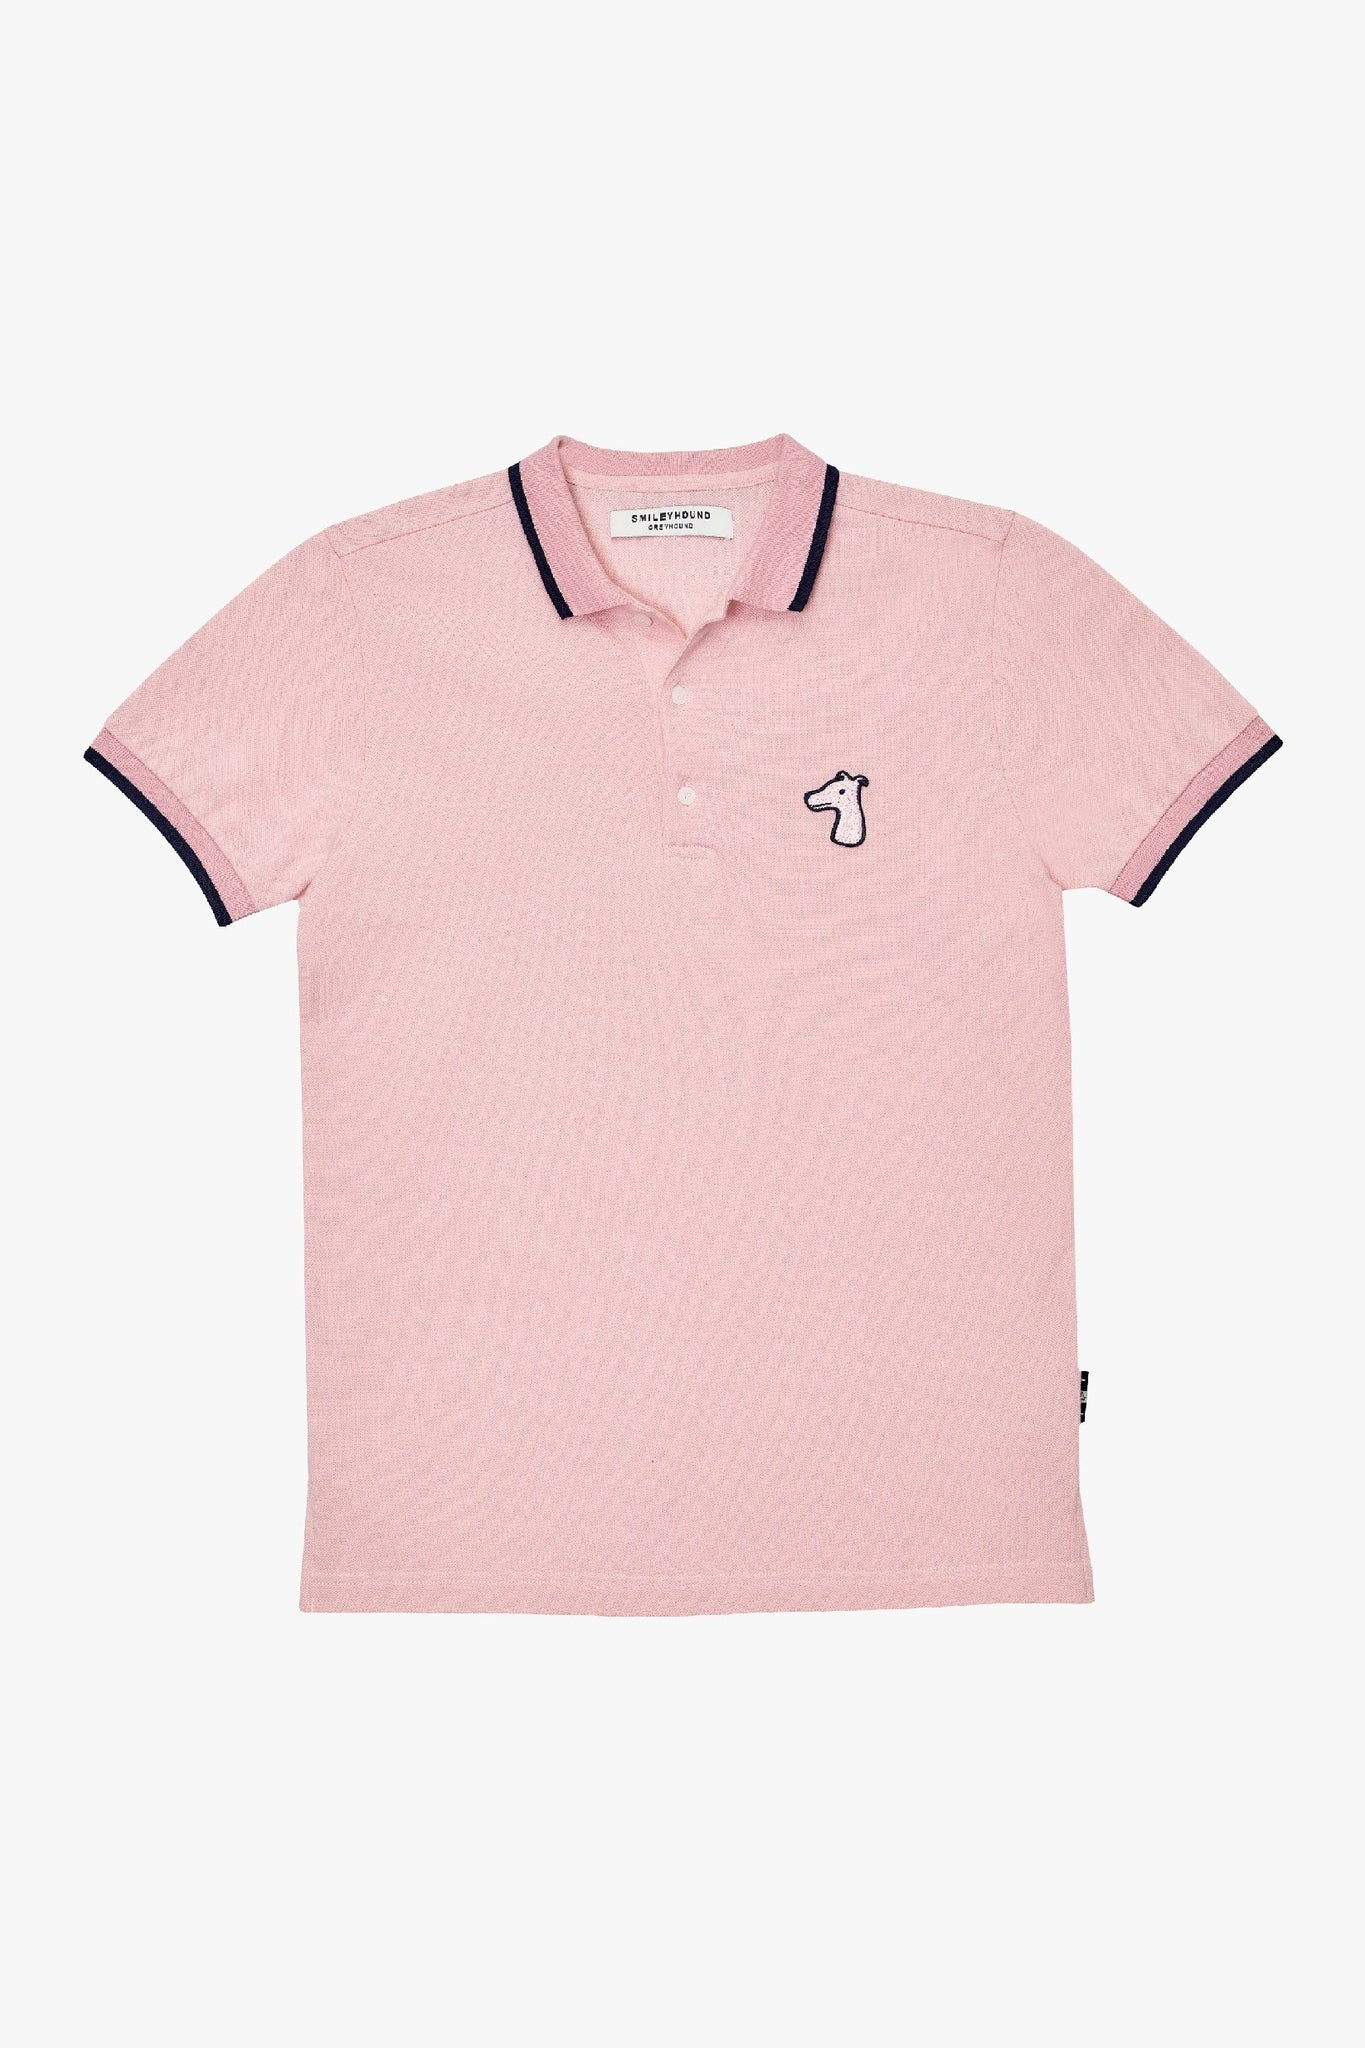 Load image into Gallery viewer, PIQUE POLO SHIRT WITH LOGO EMBROIDED (S20MD03373PK1B)